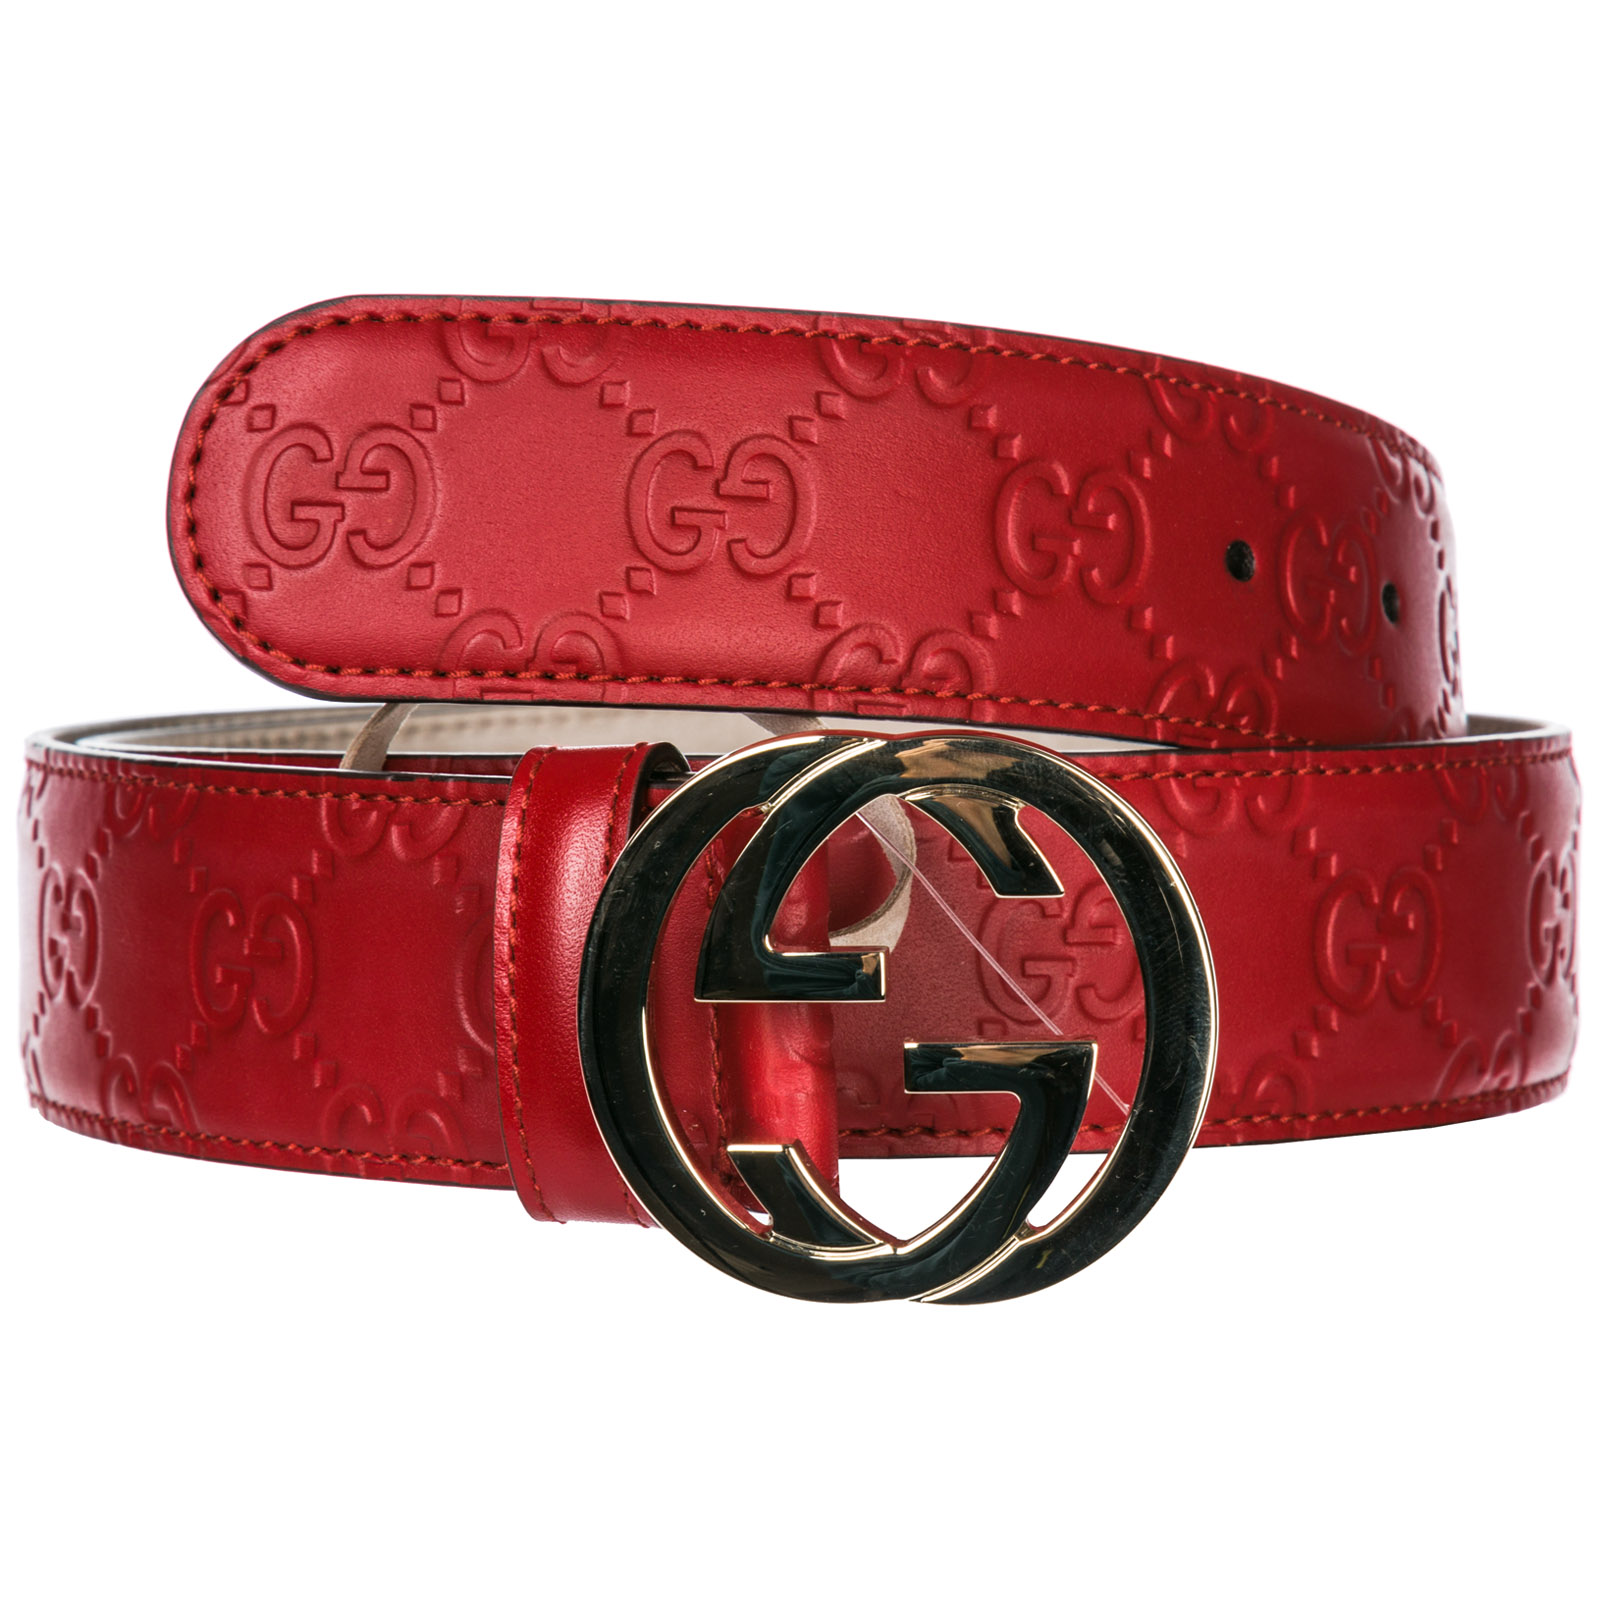 d300846e7 Gucci Women's genuine leather belt signature gg